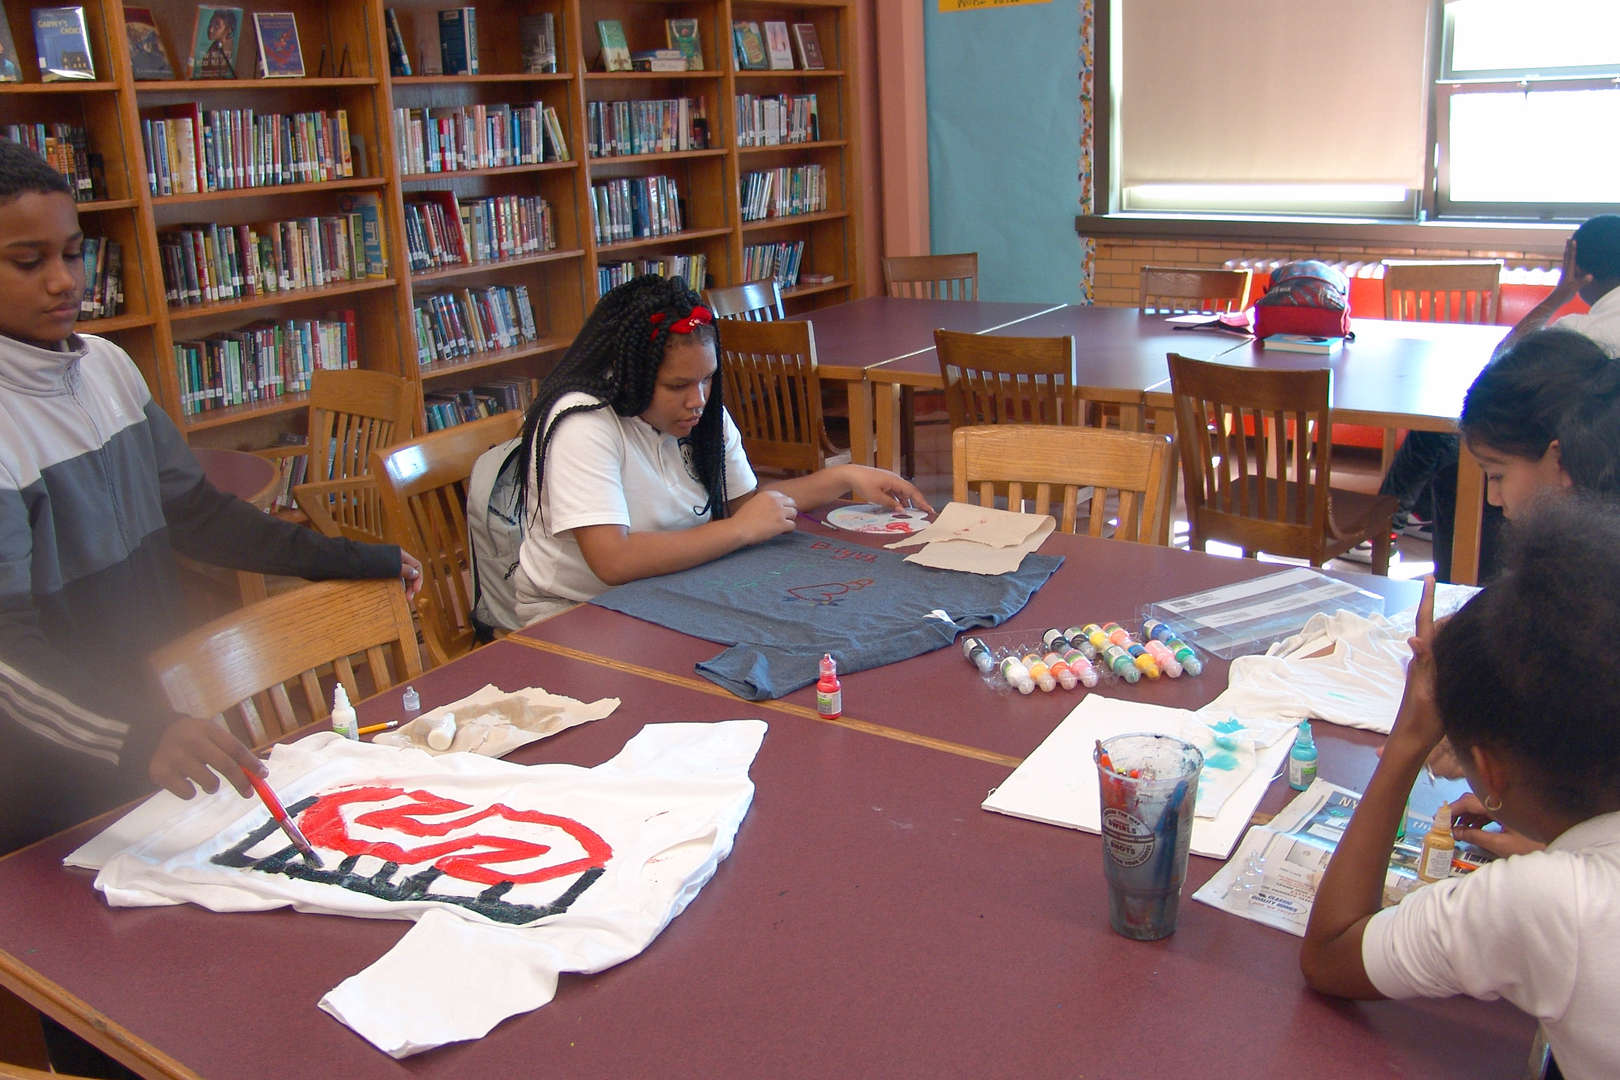 Kids working together to paint shirts